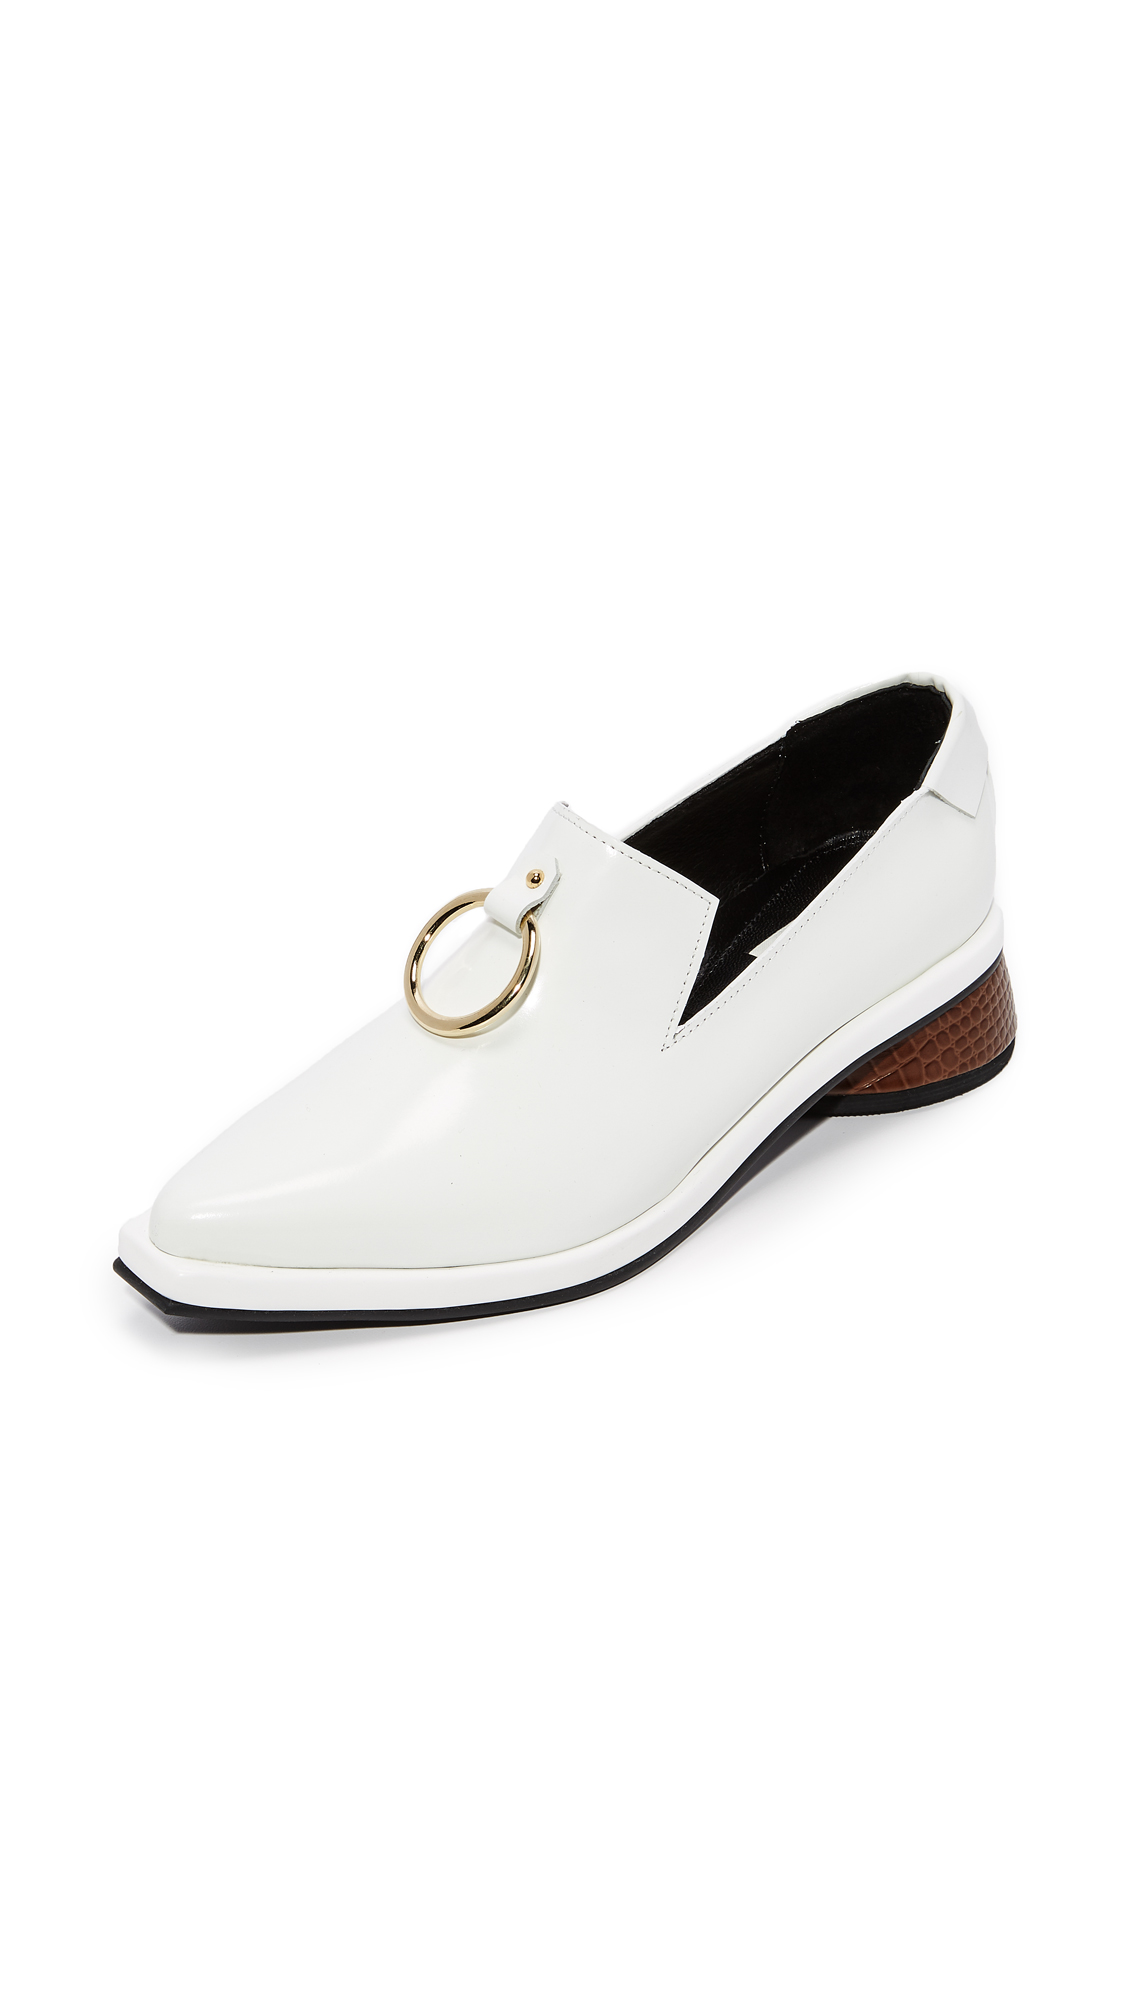 Reike Nen Ring Square Loafers - White/Brown